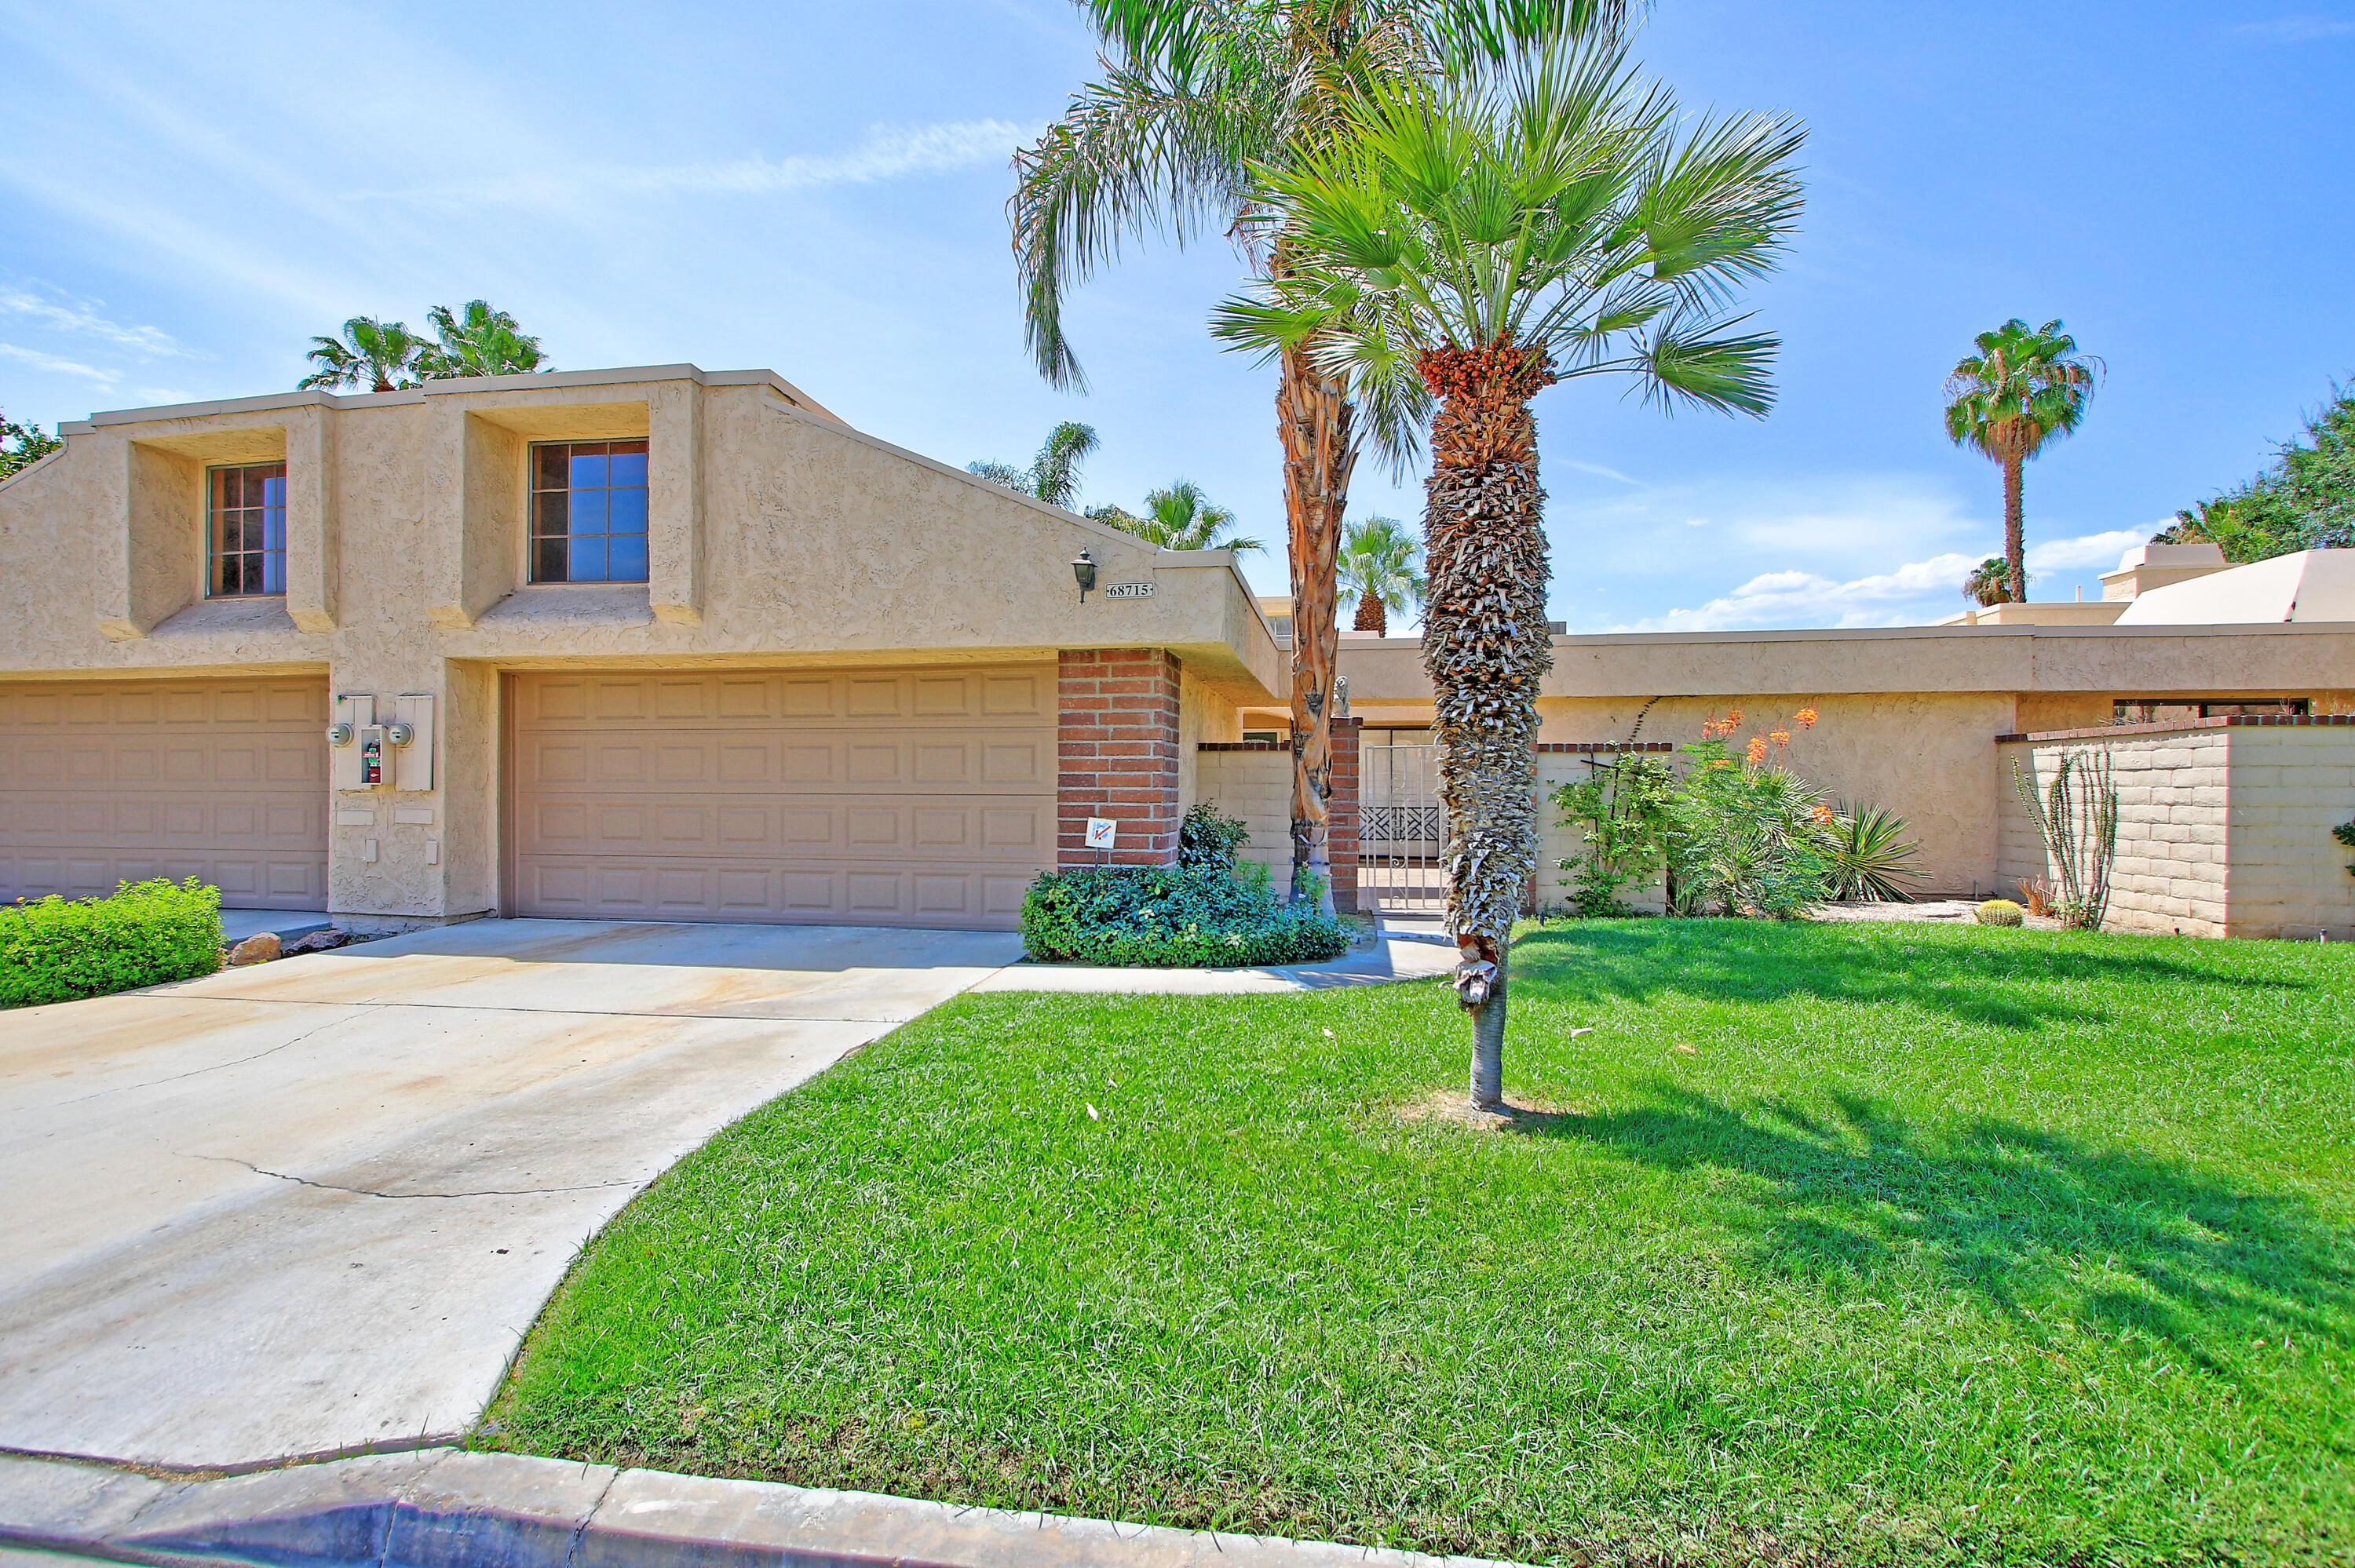 This Condo just has been totally repainted and is awaiting a new Owner.  Light & bright in a very nice location on a private Cul de sac. Fantastic golf in your new community!  This spacious condo won't last  ong